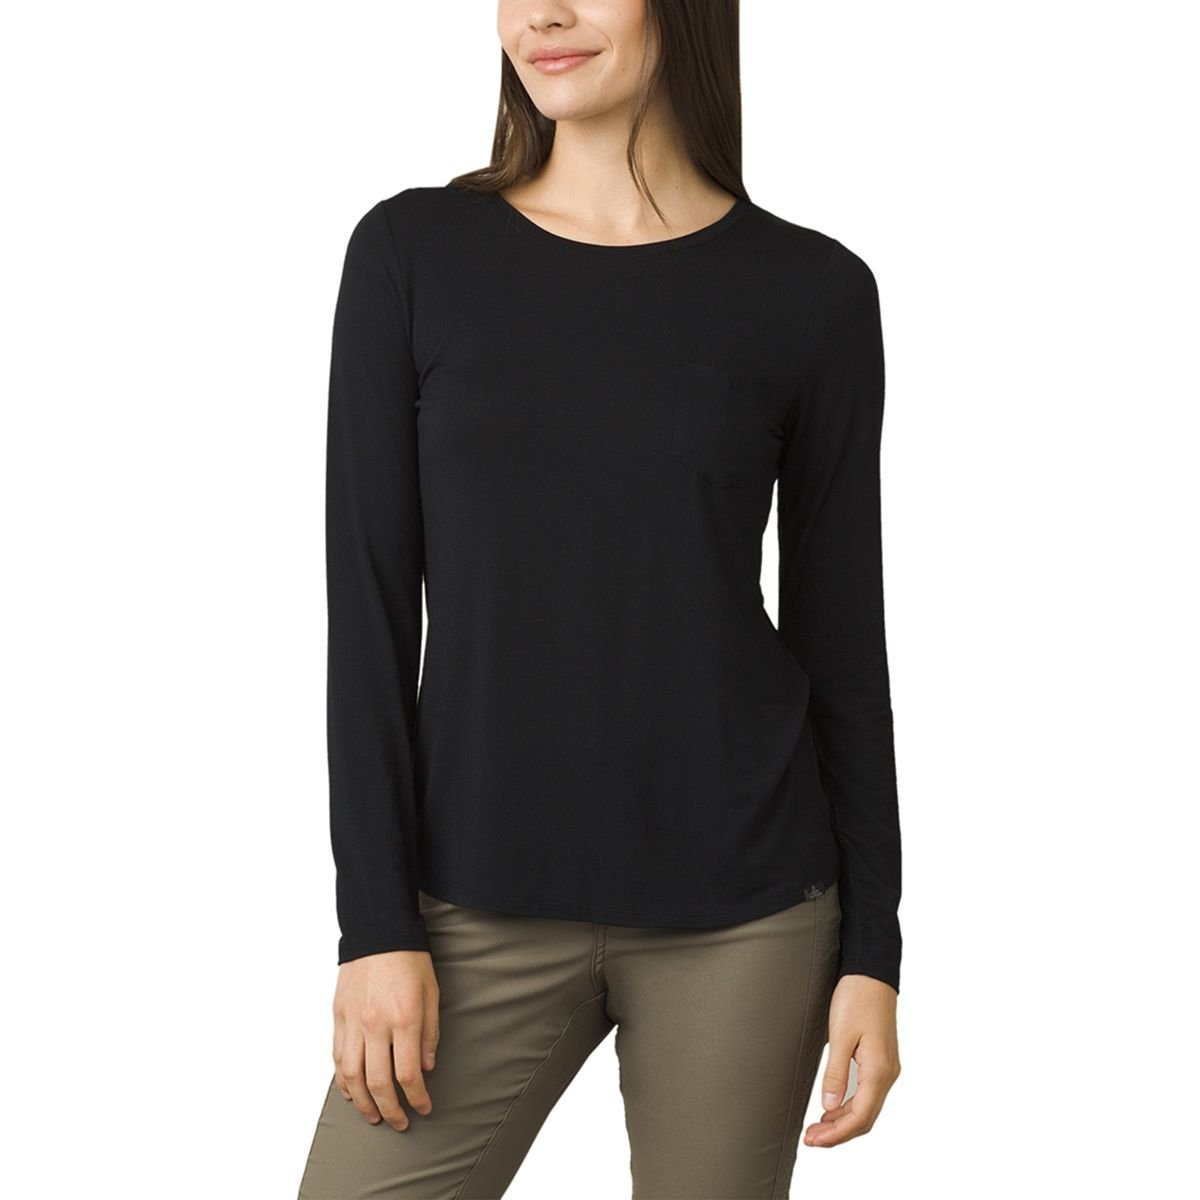 prAna Women's Foundation l/S Crew Neck Top, Black, Xsmall